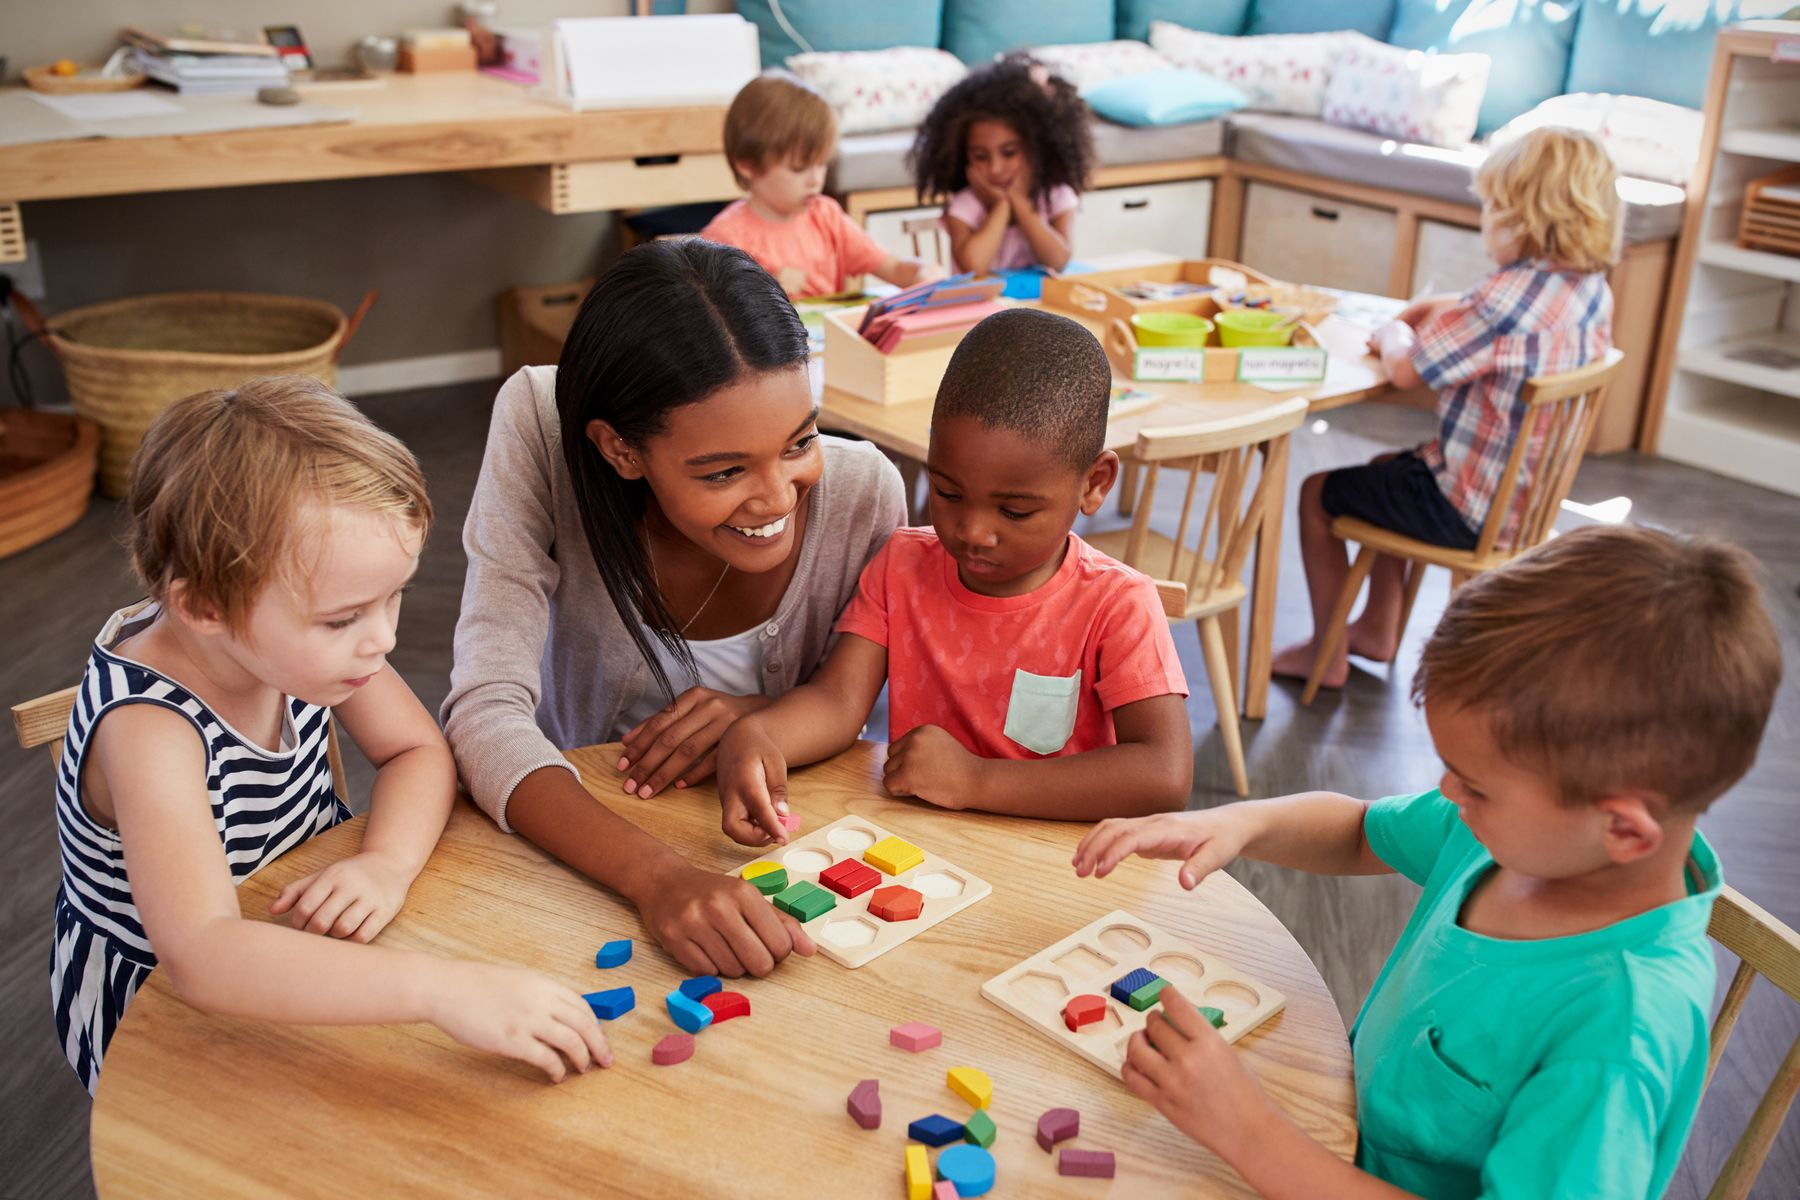 With More Than 25 Years Of Experience In Early Childhood Education